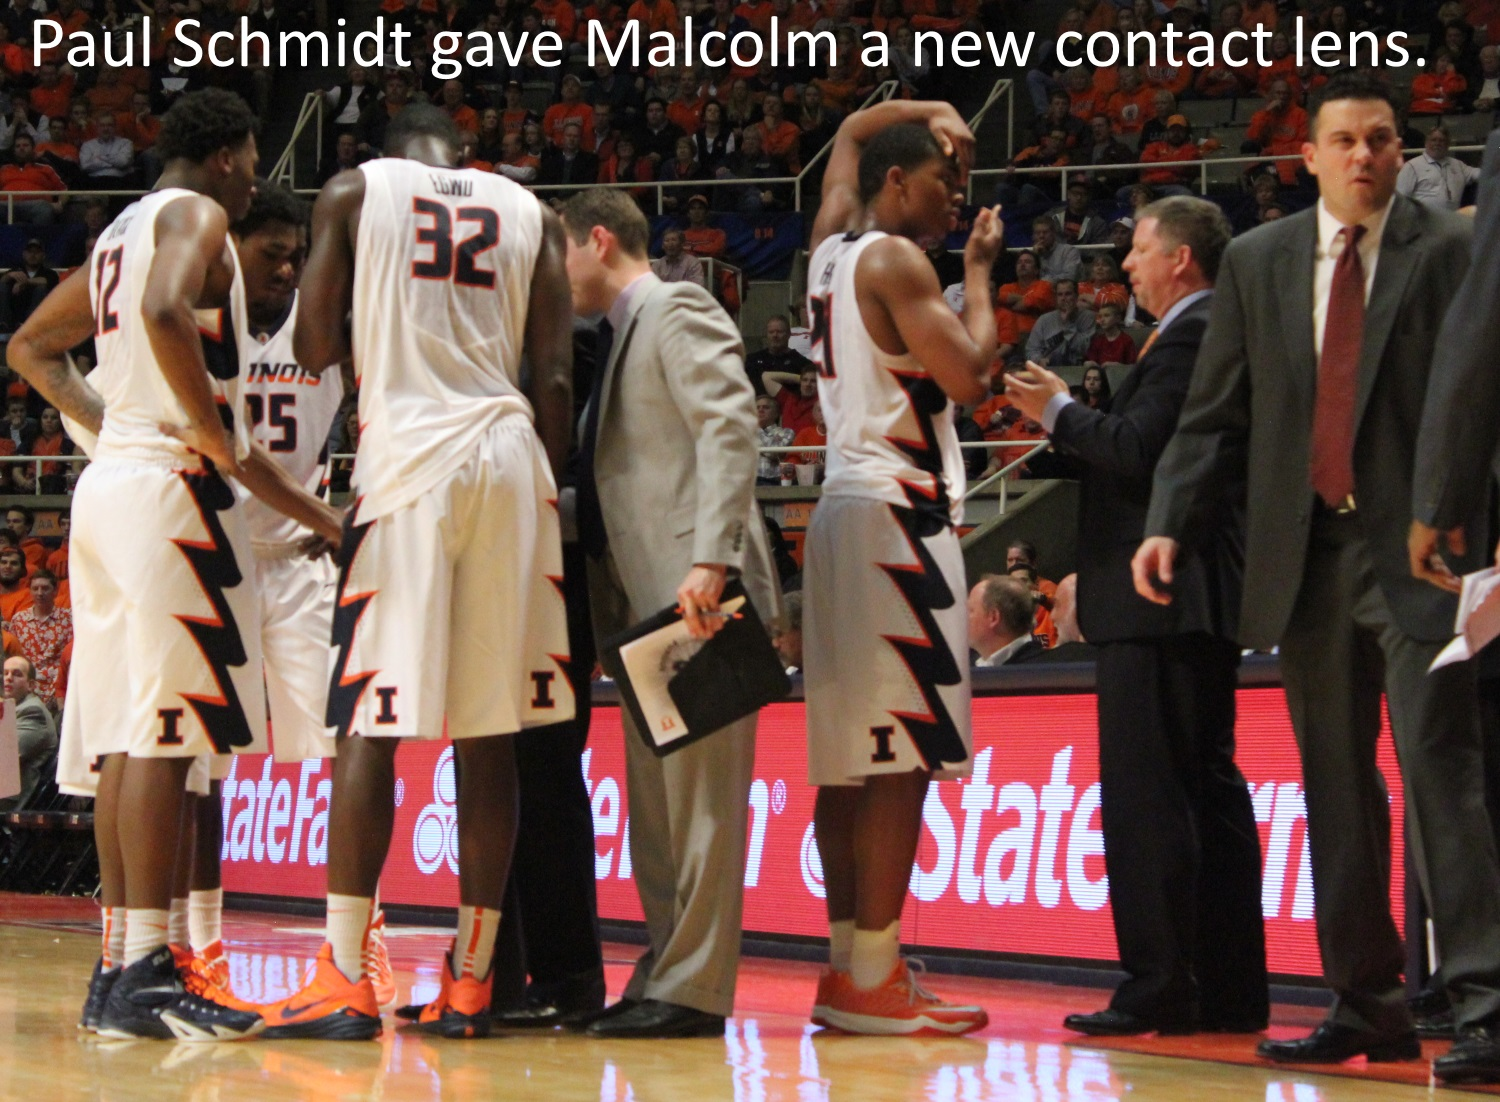 Paul Schmidt gave Malcolm Hill a new contact lens